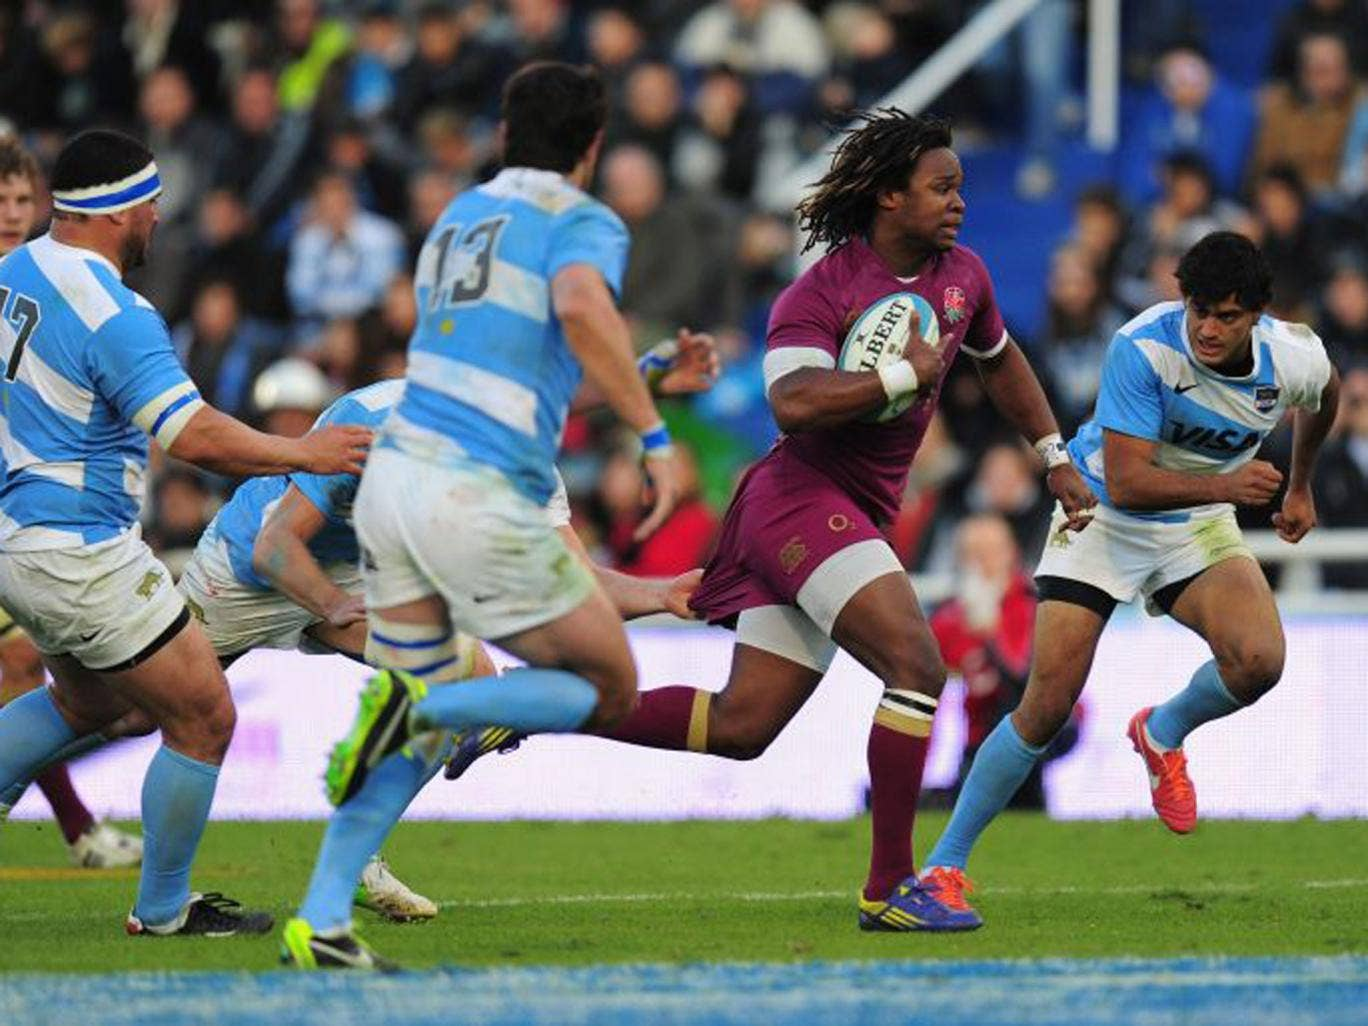 England's Marland Yarde makes a break against Argentina on Saturday